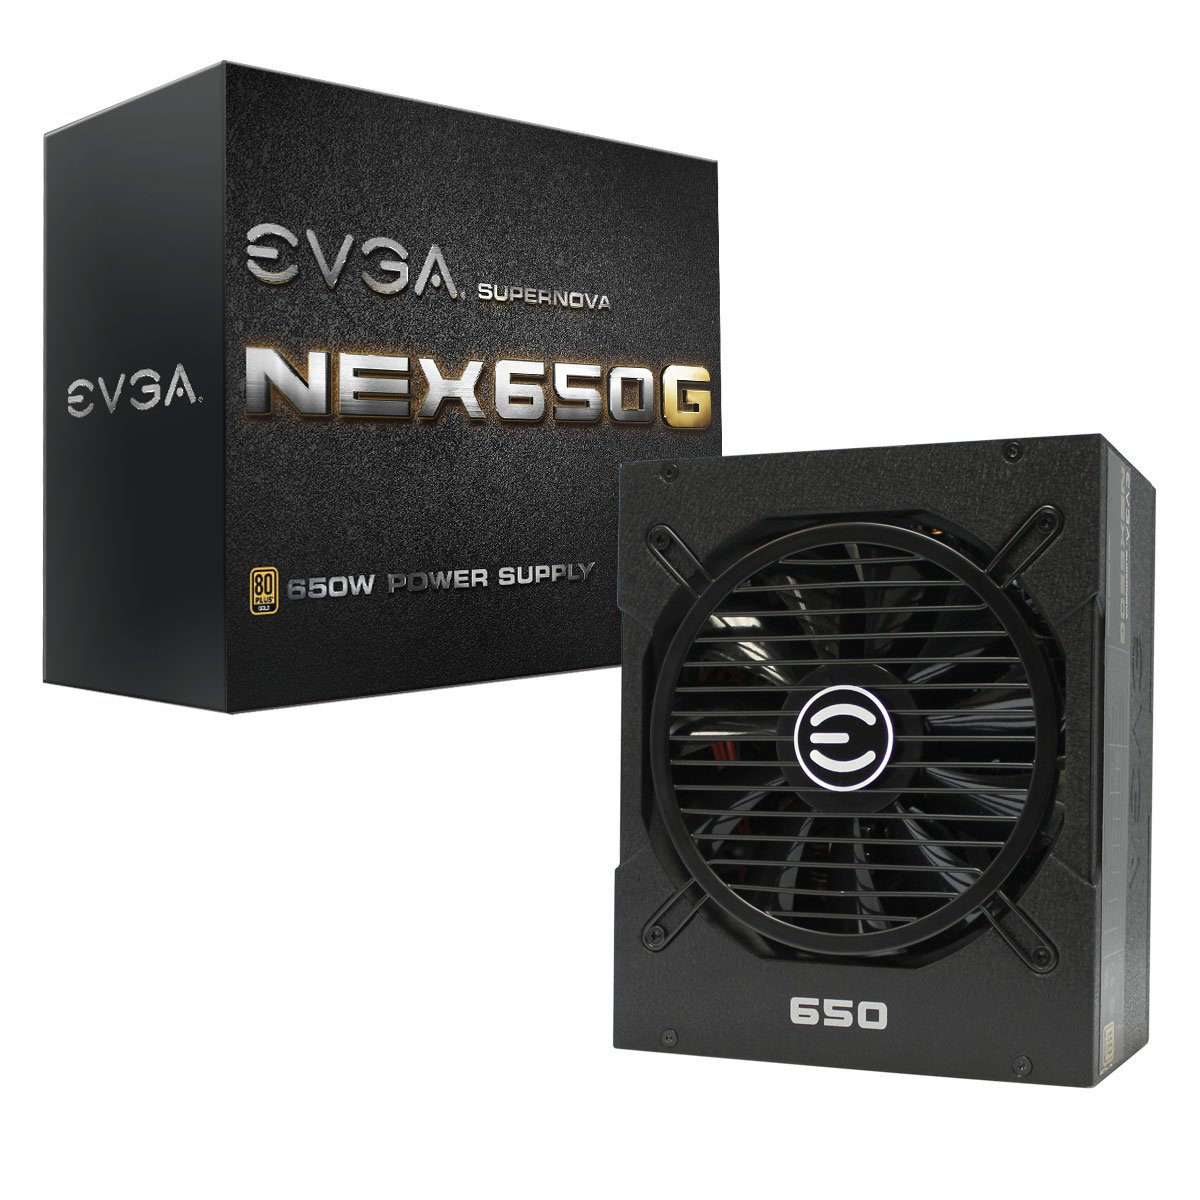 EVGA SuperNOVA 650G1 650W ATX12V Power Supply (80 PLUS Gold certified)